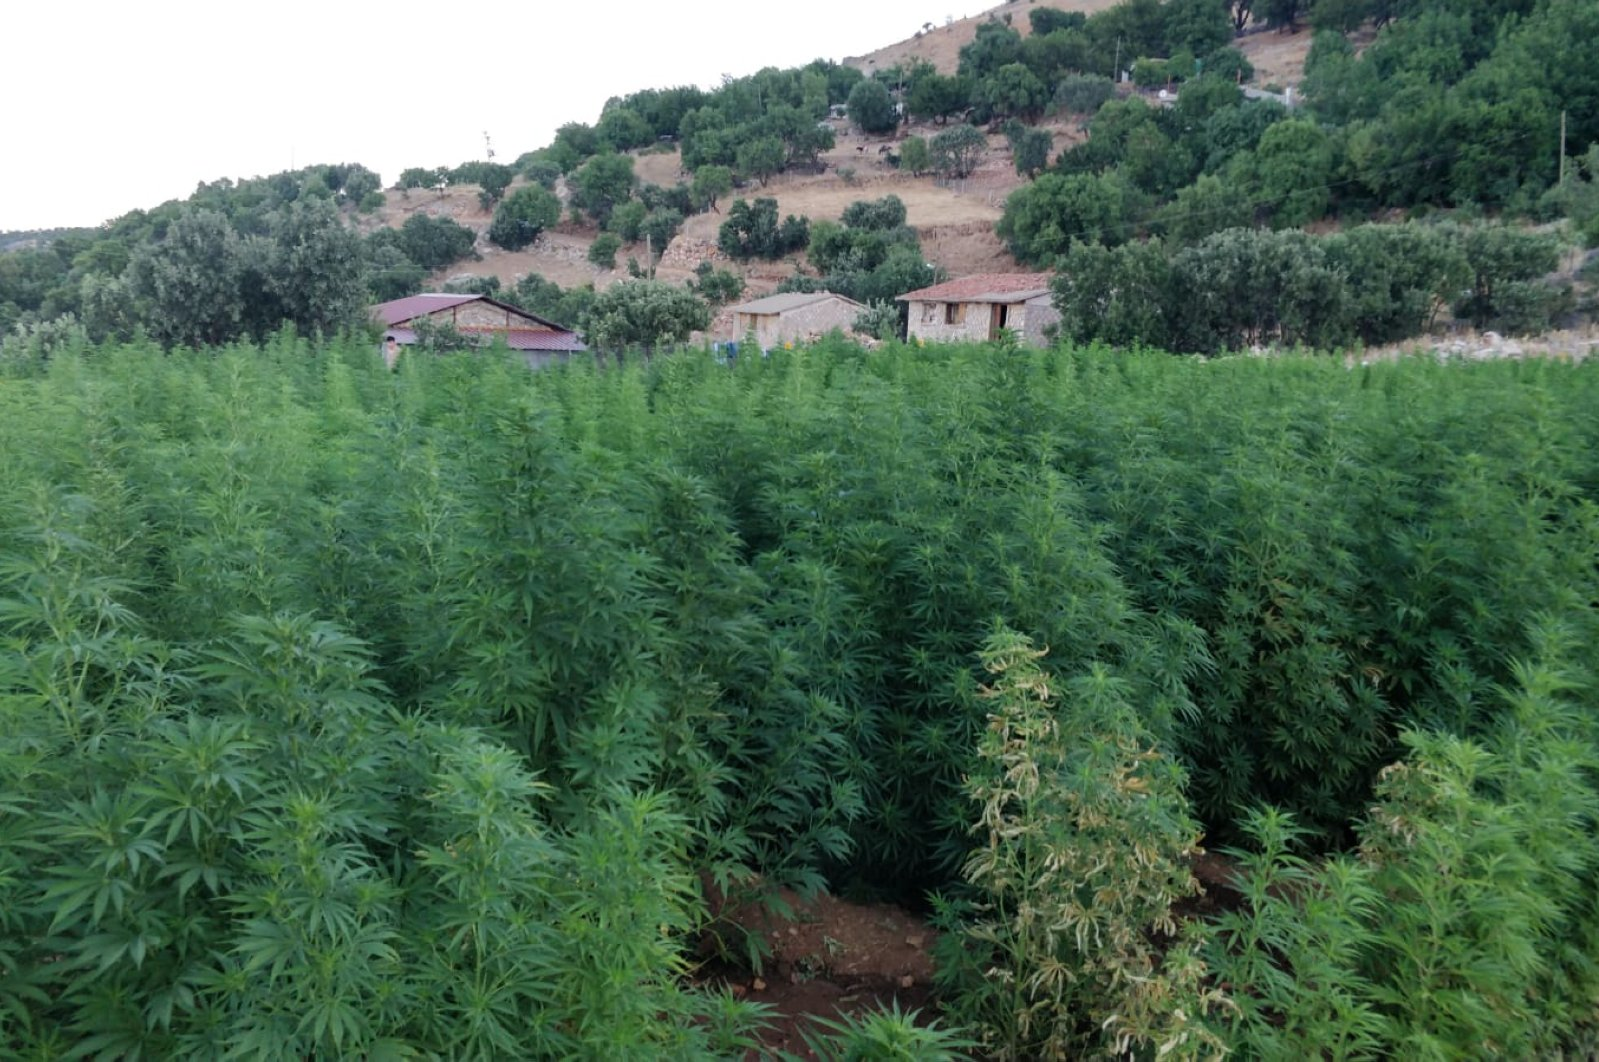 A cannabis field raided by security forces in Diyarbakır province, southeastern Turkey, July 21, 2020. (AA Photo)